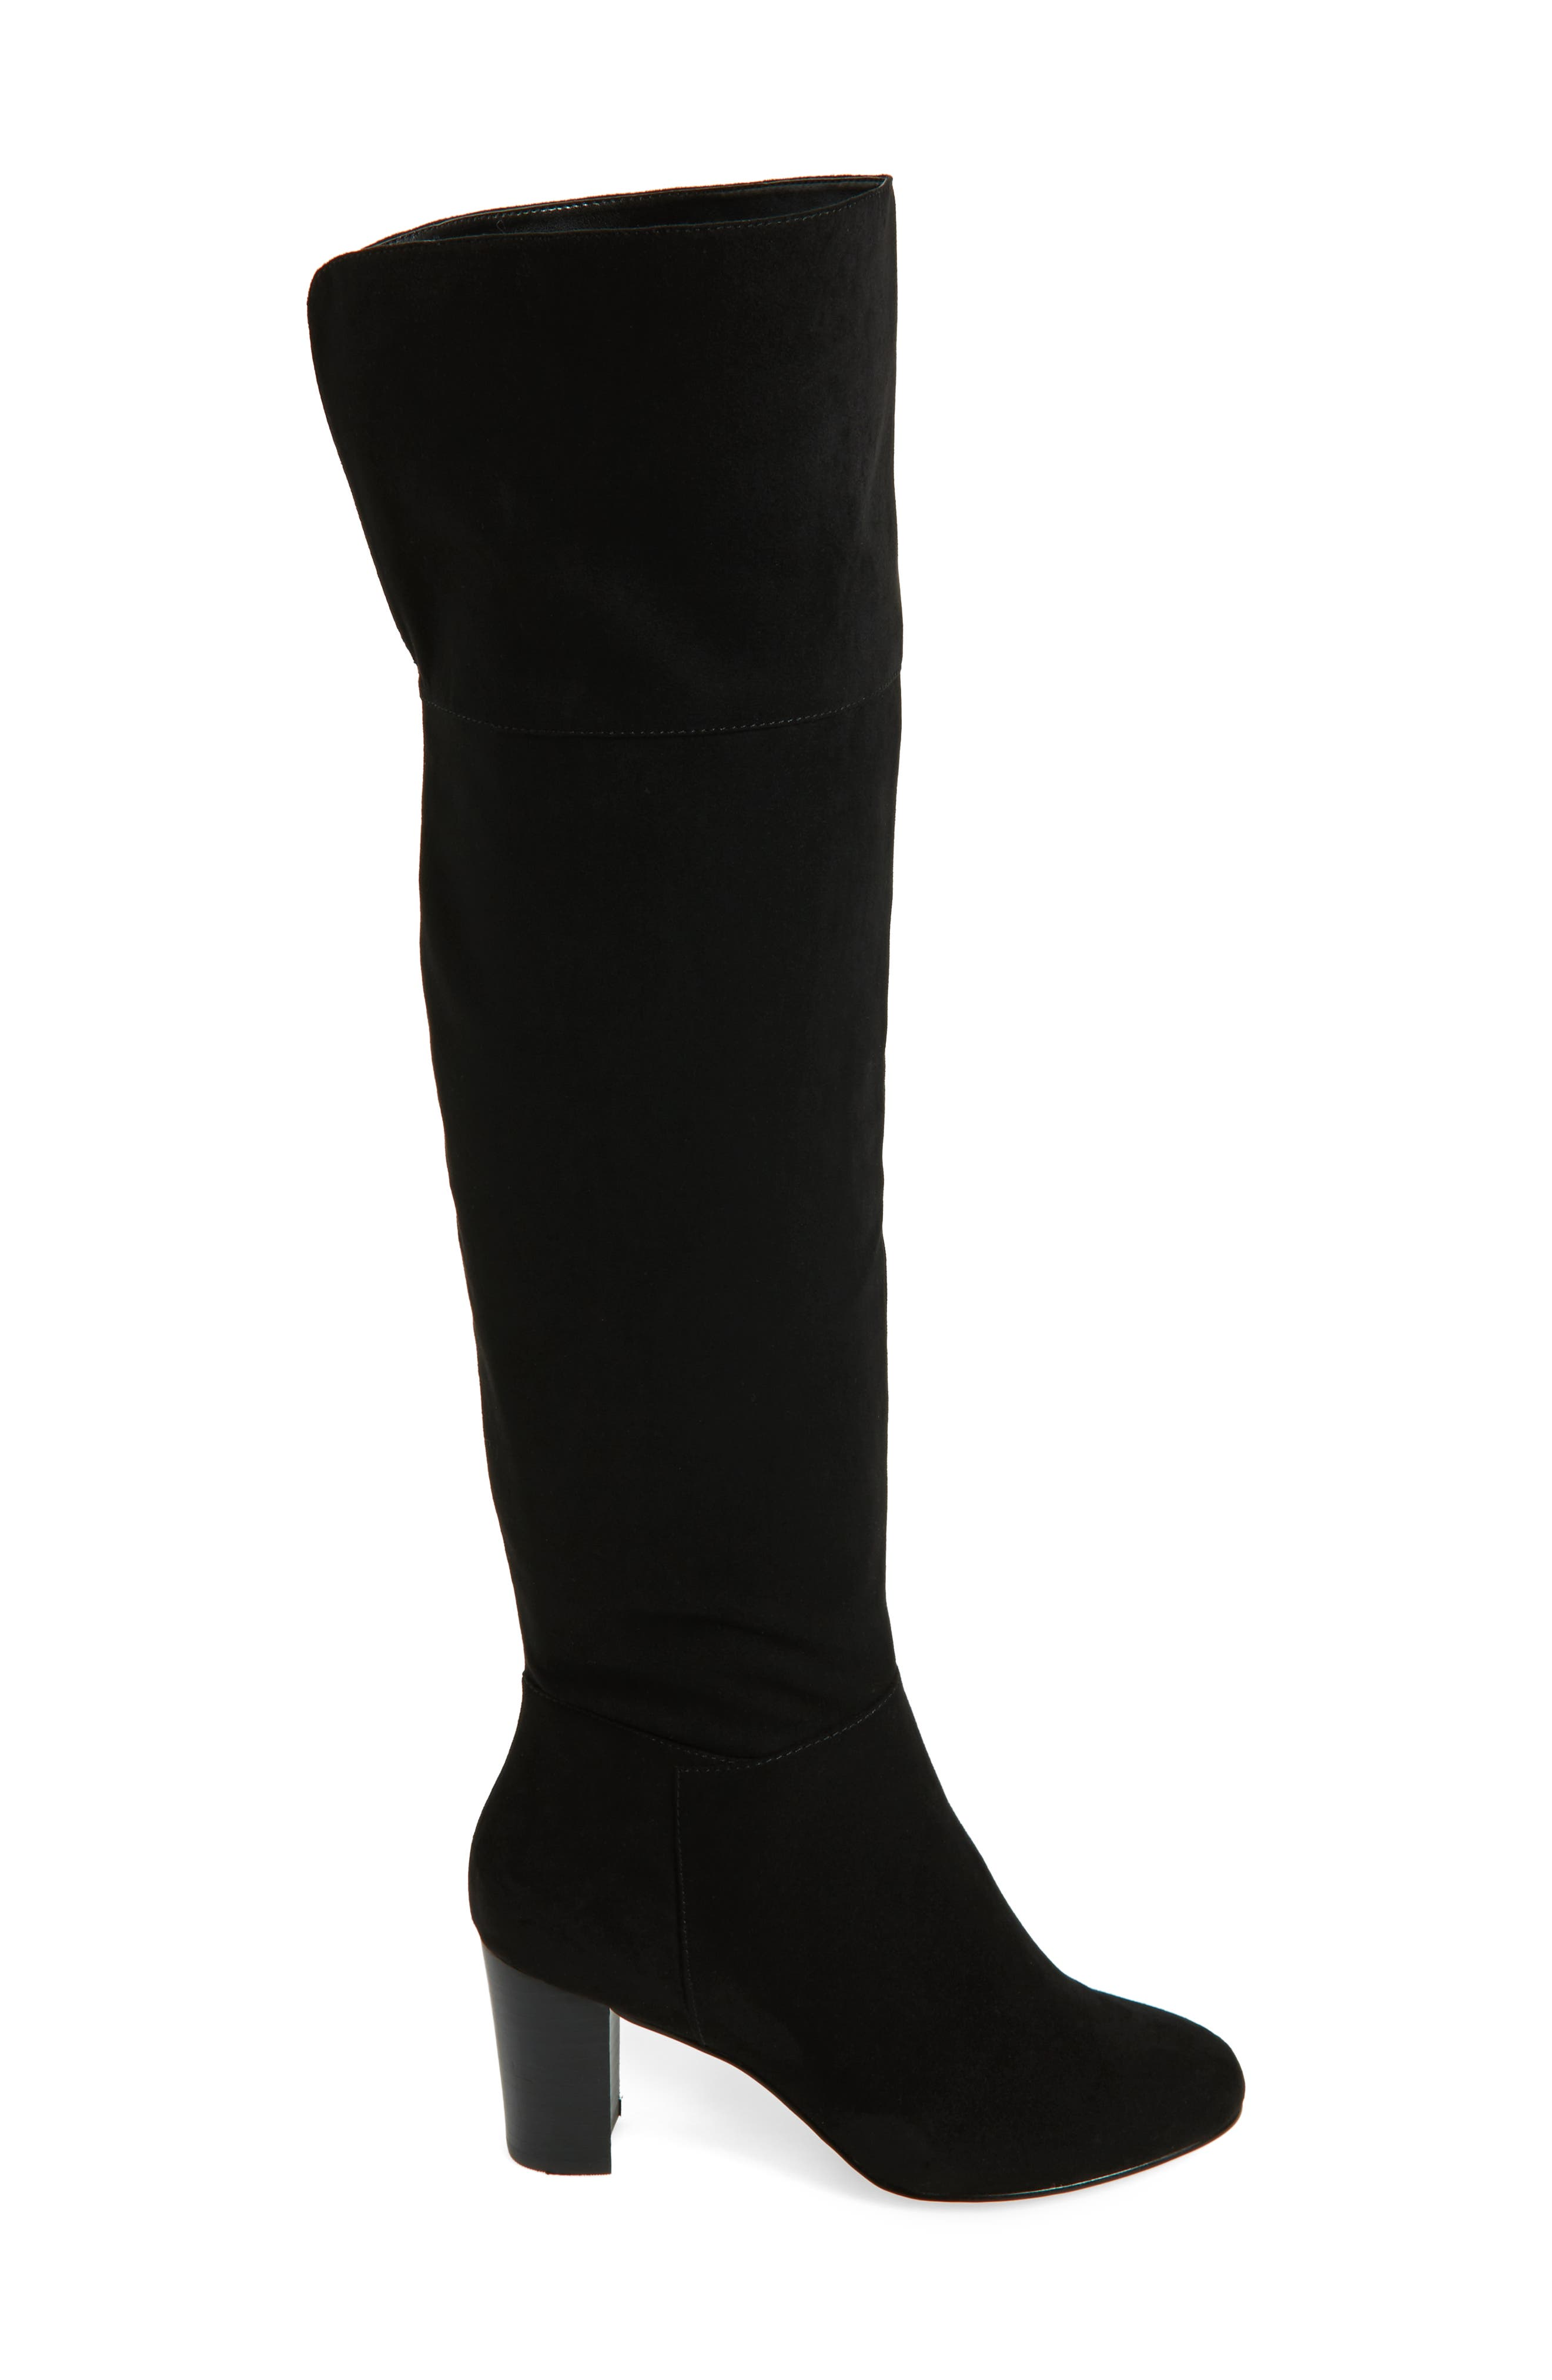 Telluride II Over the Knee Boot,                             Alternate thumbnail 7, color,